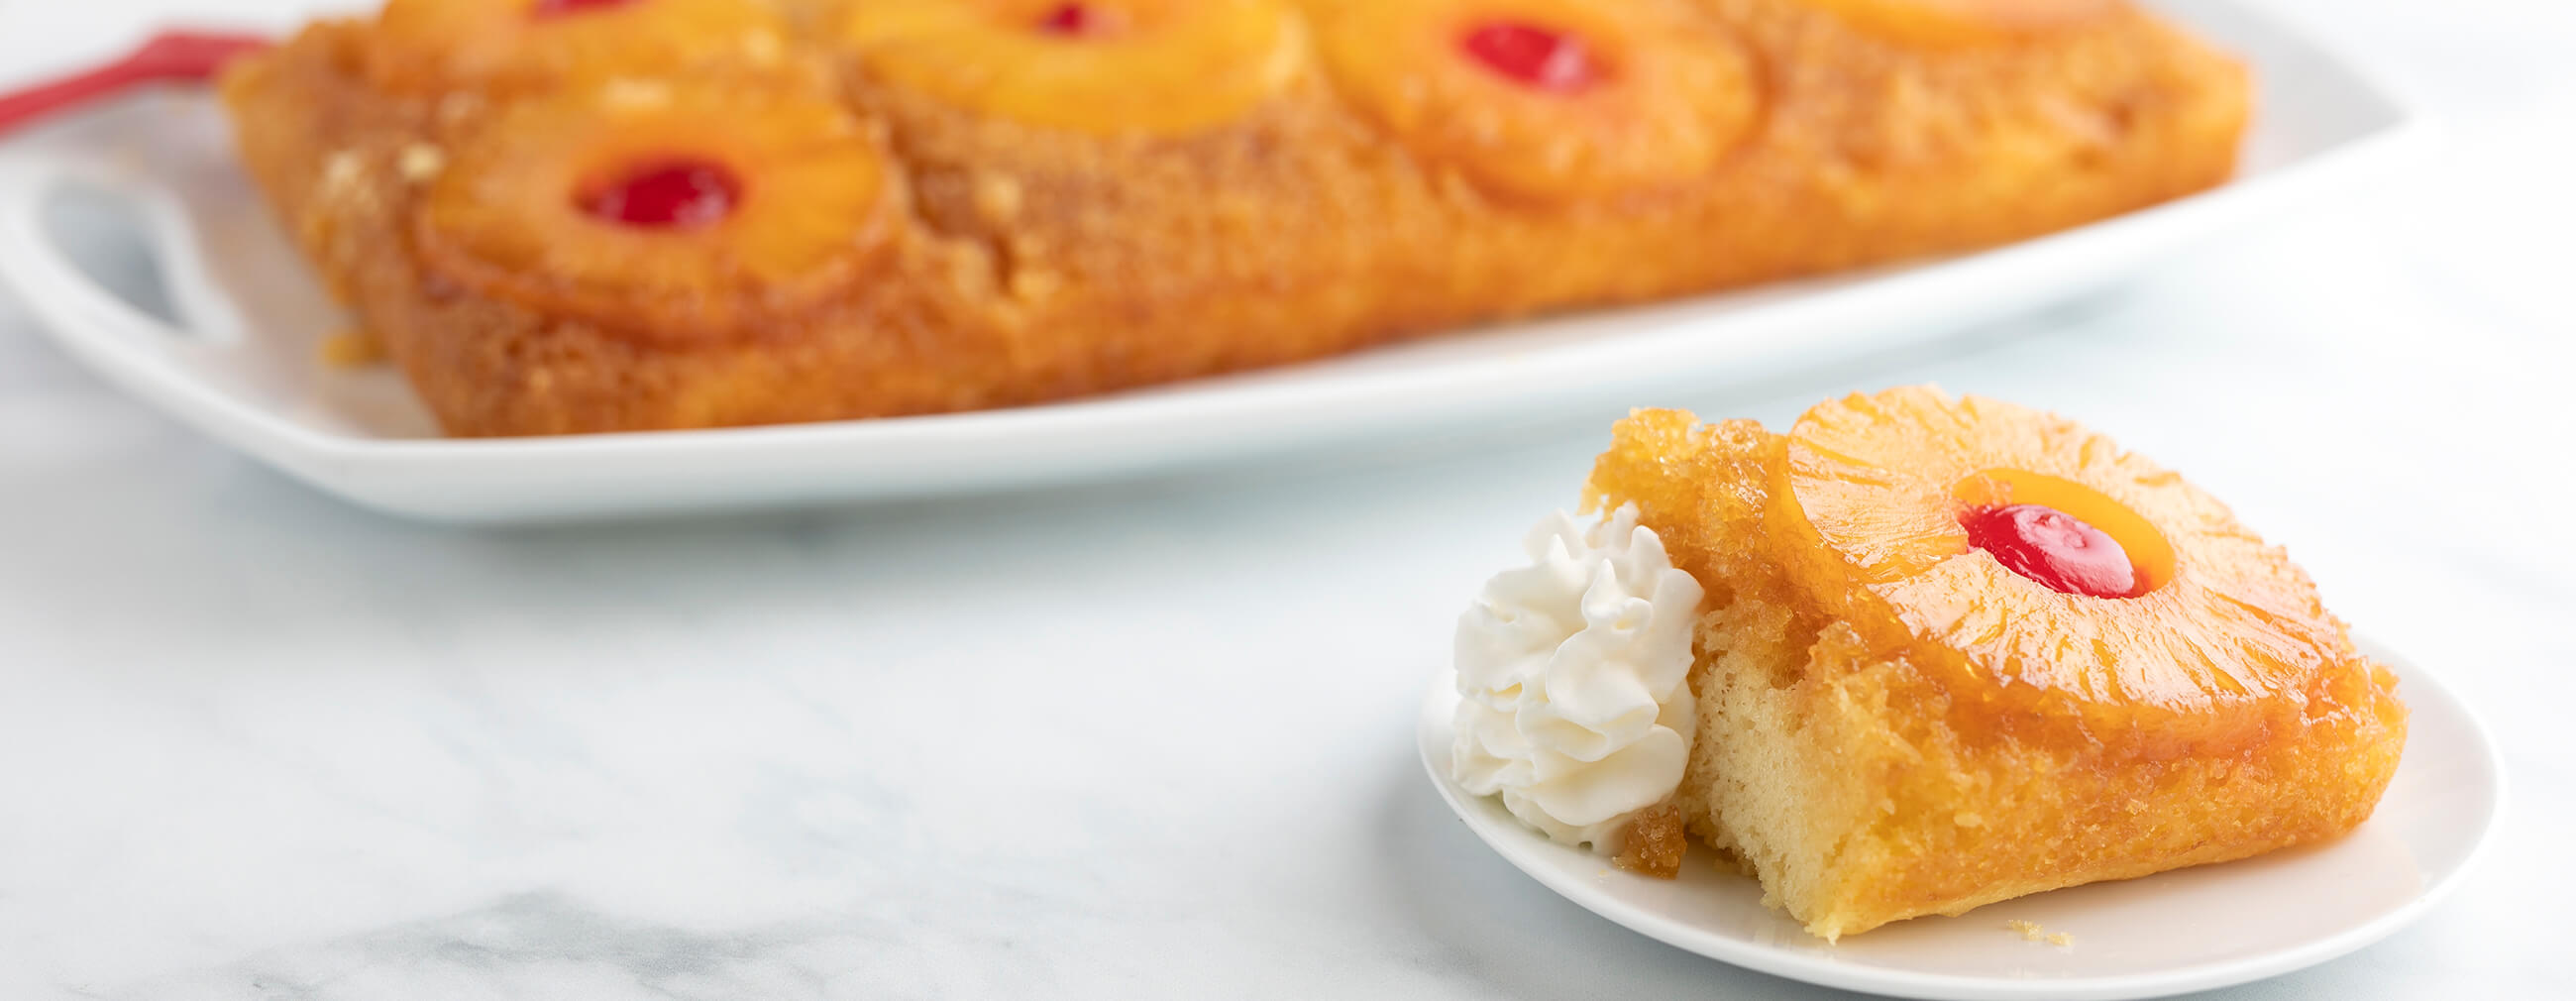 Double Pineapple Upside Down Cake